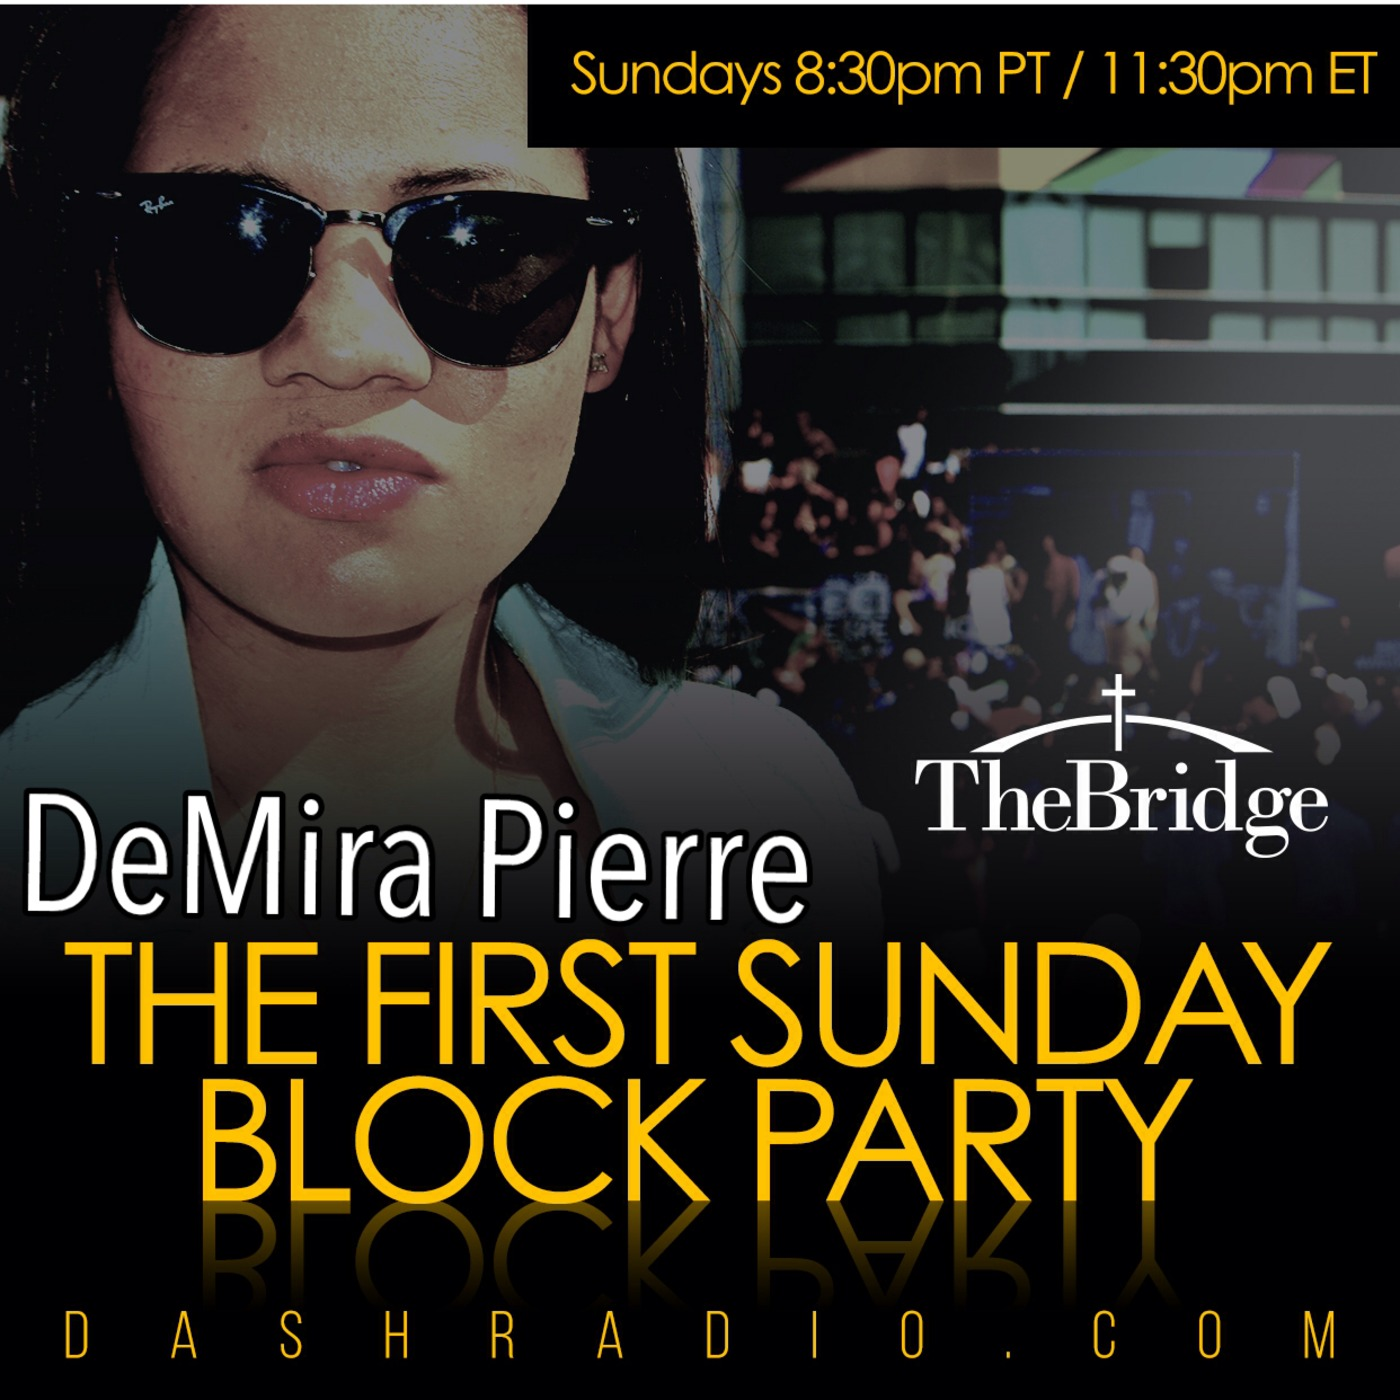 The First Sunday Block Party